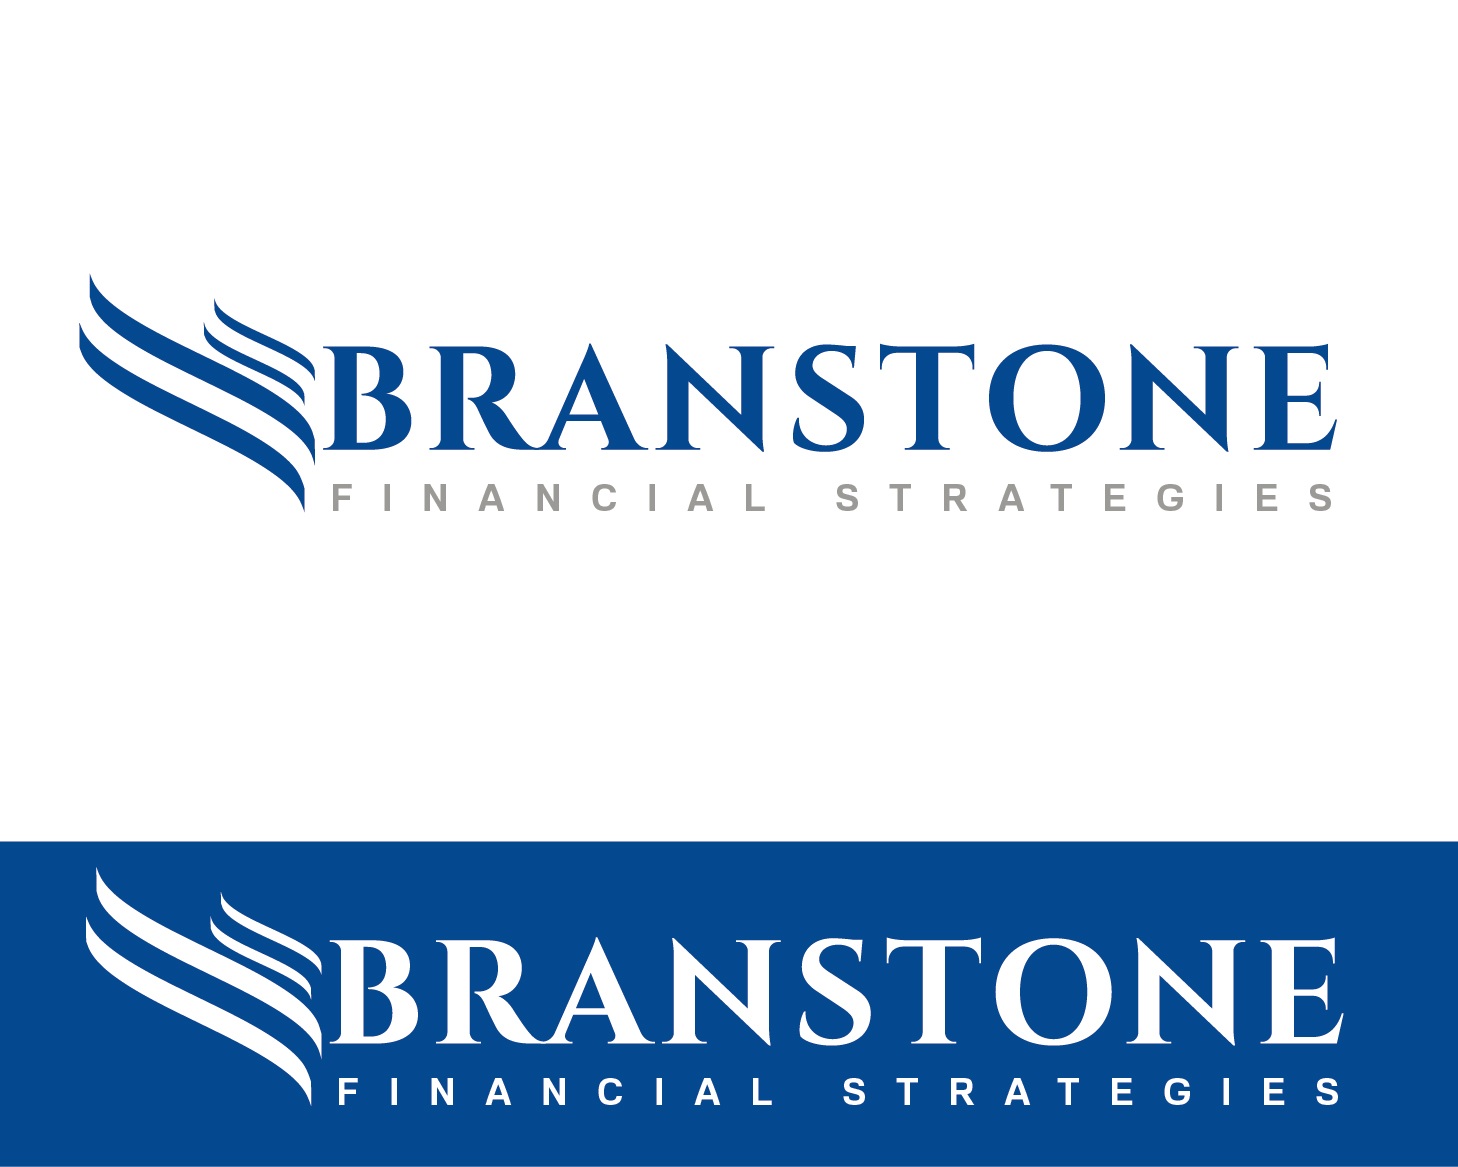 Logo Design by VENTSISLAV KOVACHEV - Entry No. 208 in the Logo Design Contest Inspiring Logo Design for Branstone Financial Strategies.